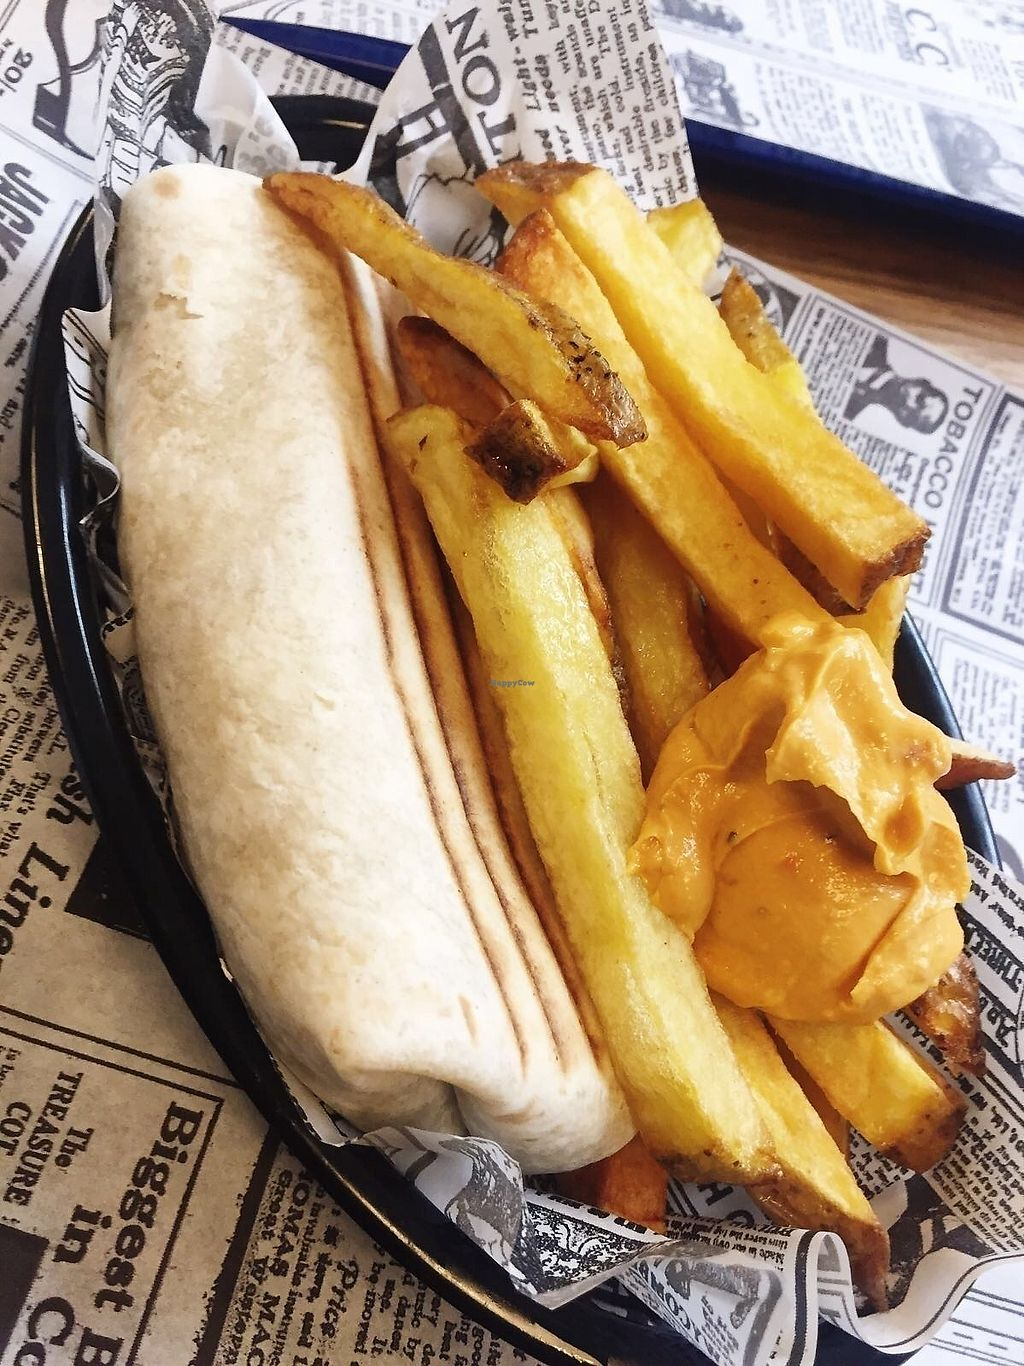 """Photo of Super Vegan  by <a href=""""/members/profile/TARAMCDONALD"""">TARAMCDONALD</a> <br/>Burrito and chips <br/> December 28, 2017  - <a href='/contact/abuse/image/71044/340120'>Report</a>"""